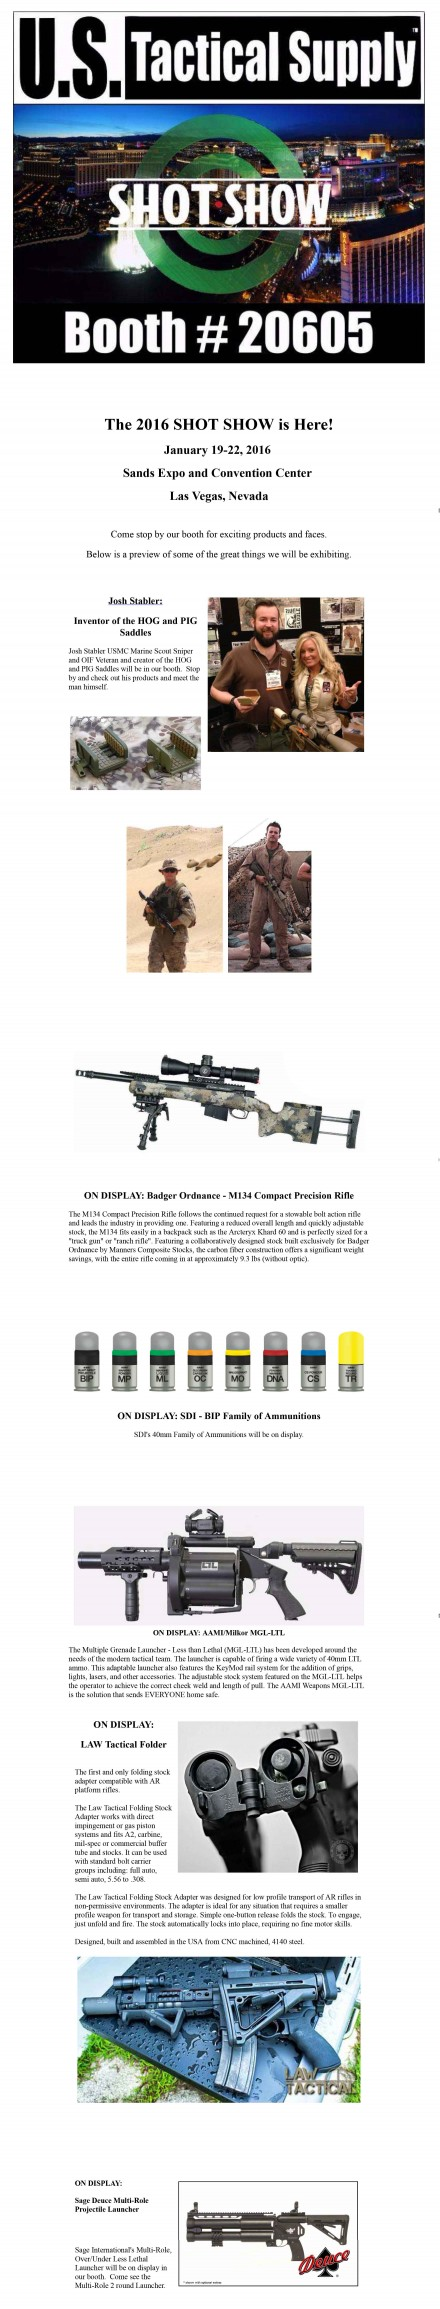 US Tactical Supply